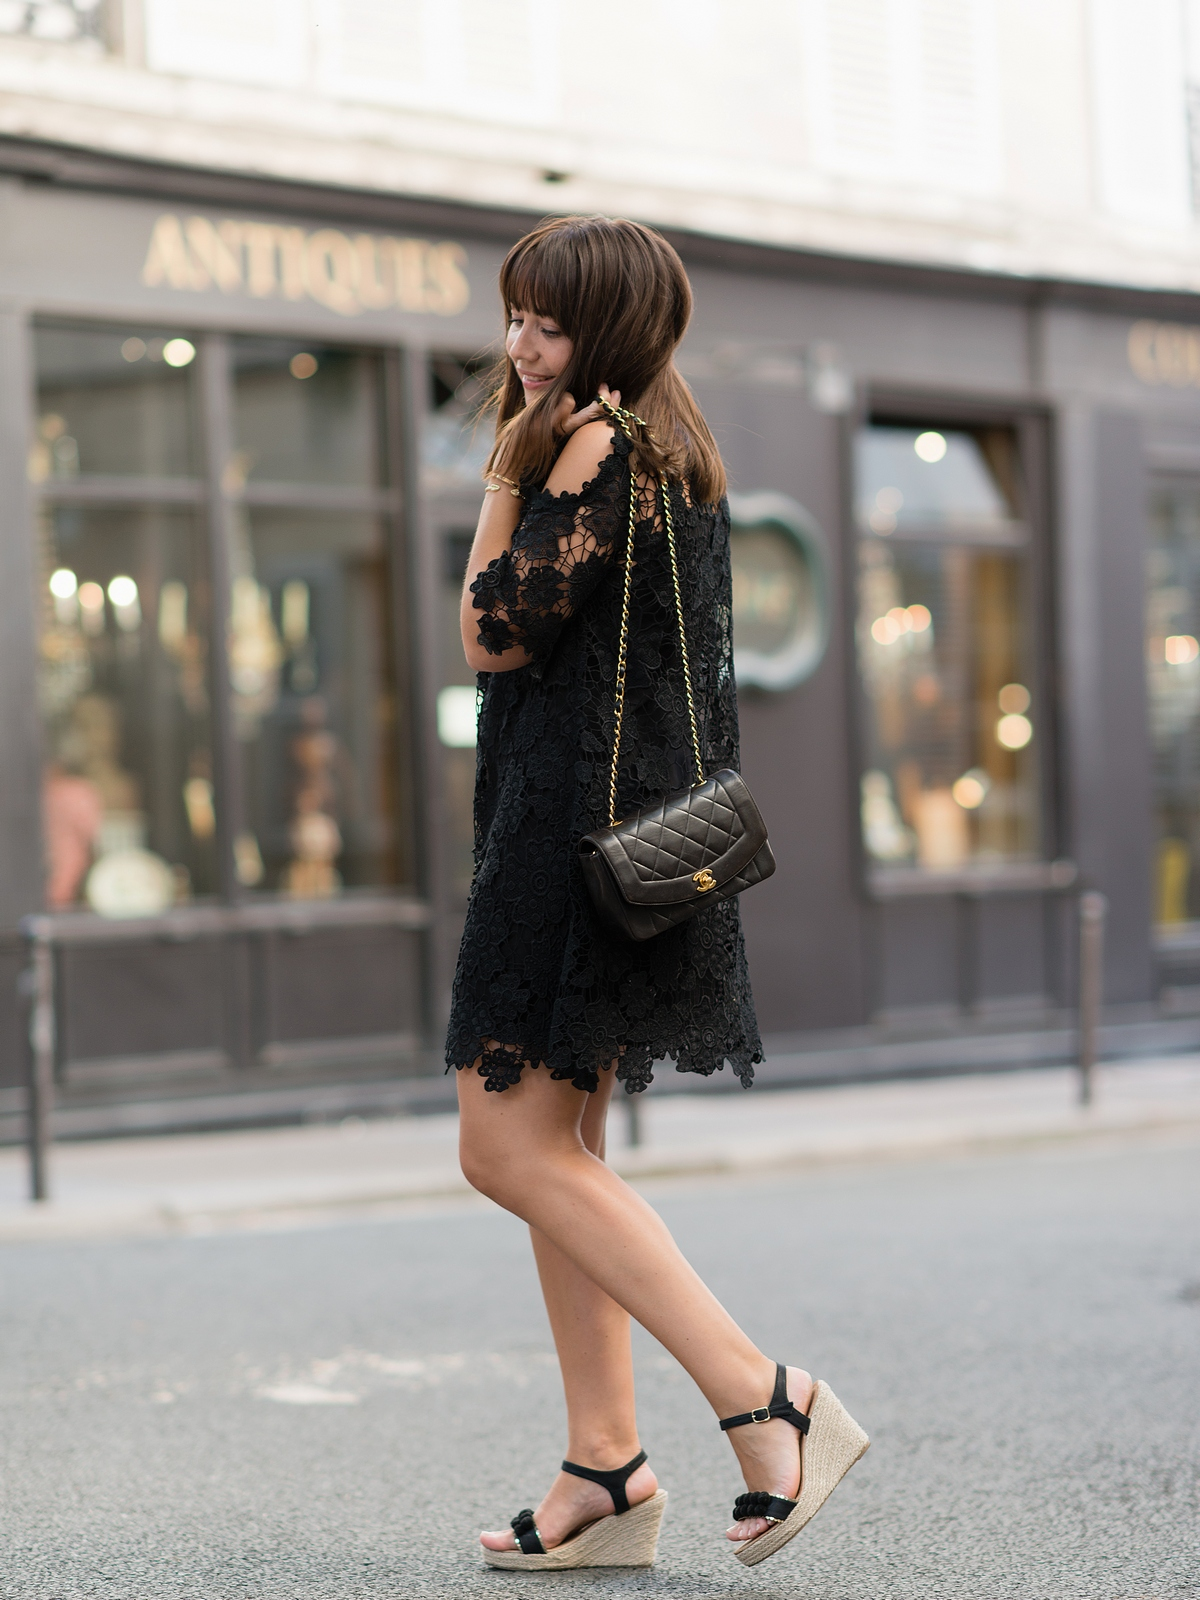 la petite robe noire - crochet - black dress - summer - parisienne - chanel bag - sac